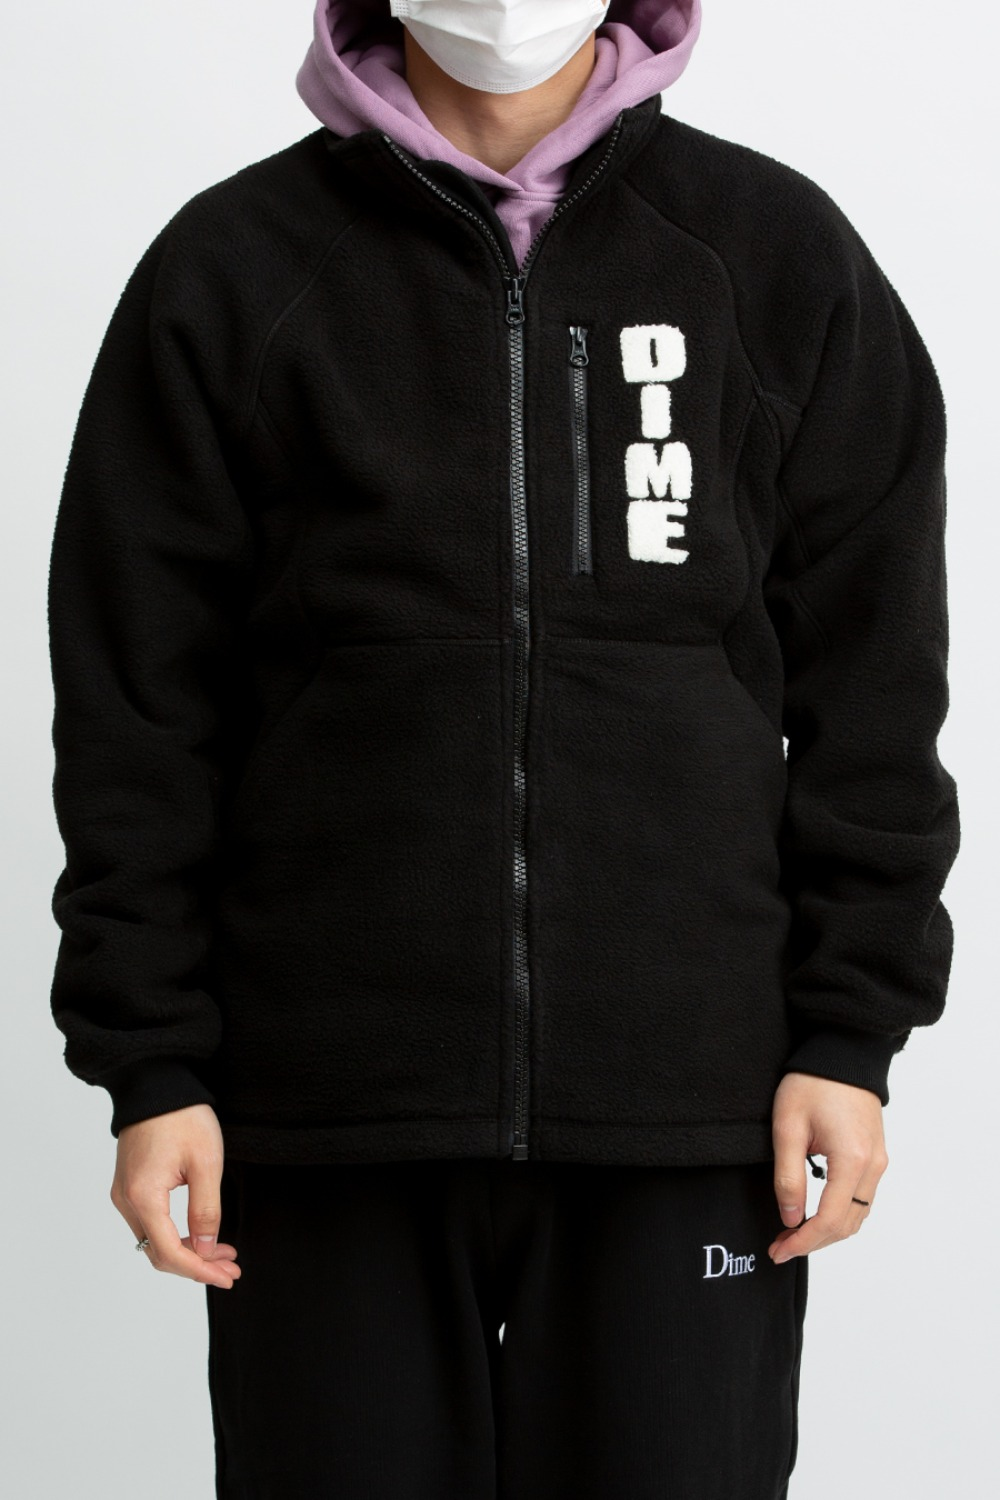 HI PILE SHERPA JACKET BLACK